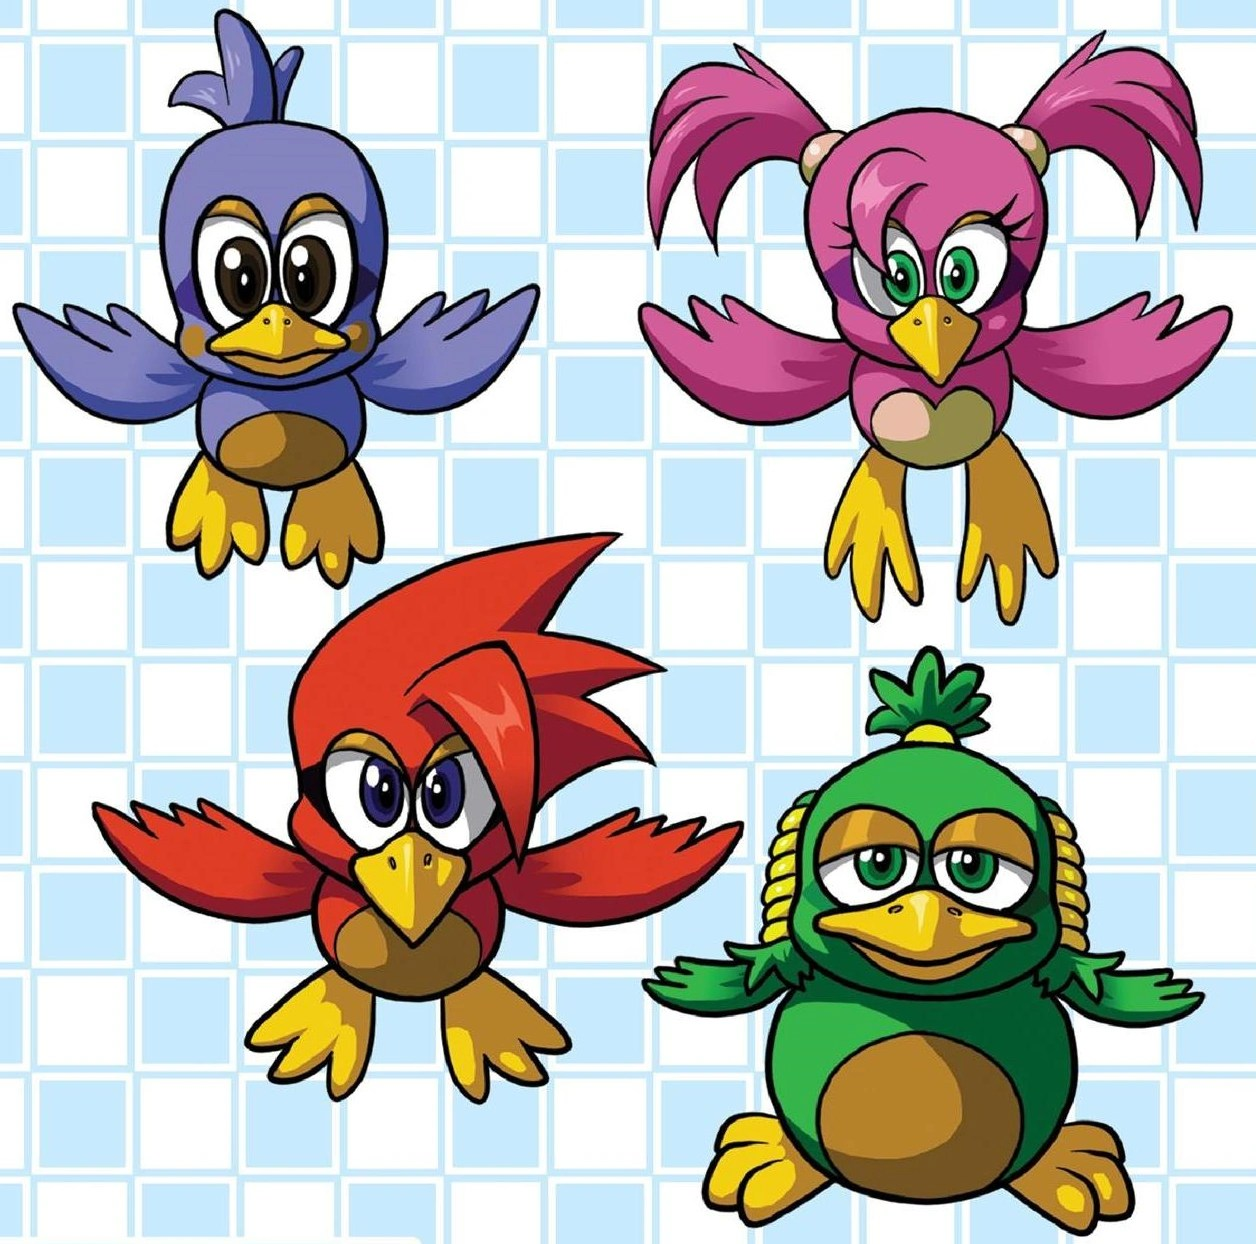 3d Vicky Name Wallpaper Flicky Pre Super Genesis Wave Sonic News Network